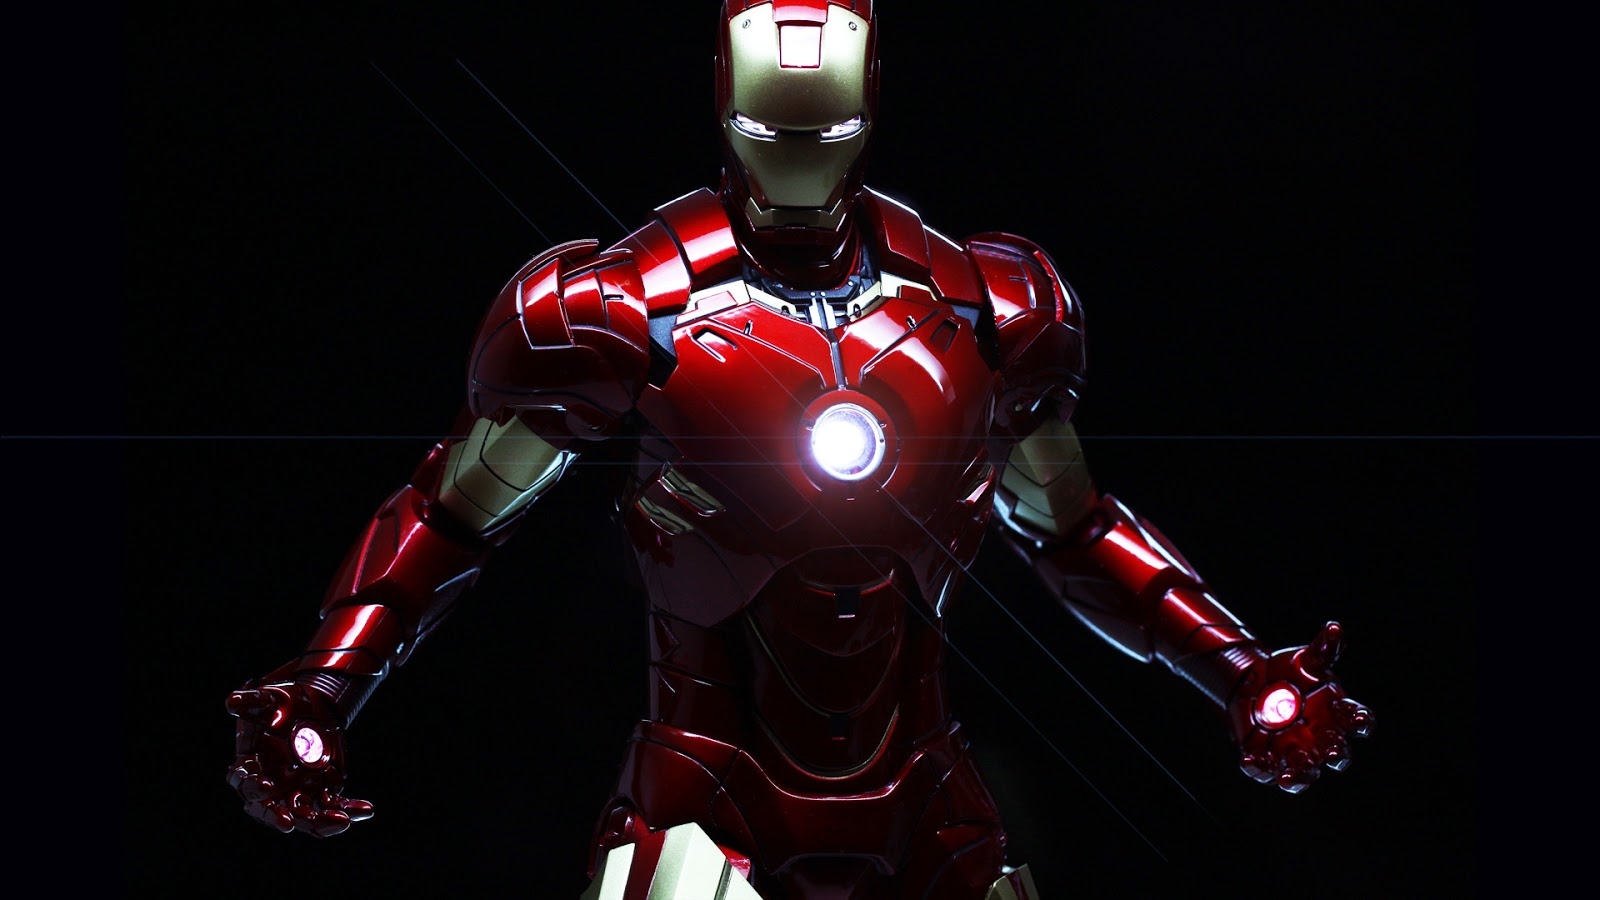 Avengers Latest Iron Man Picture HD